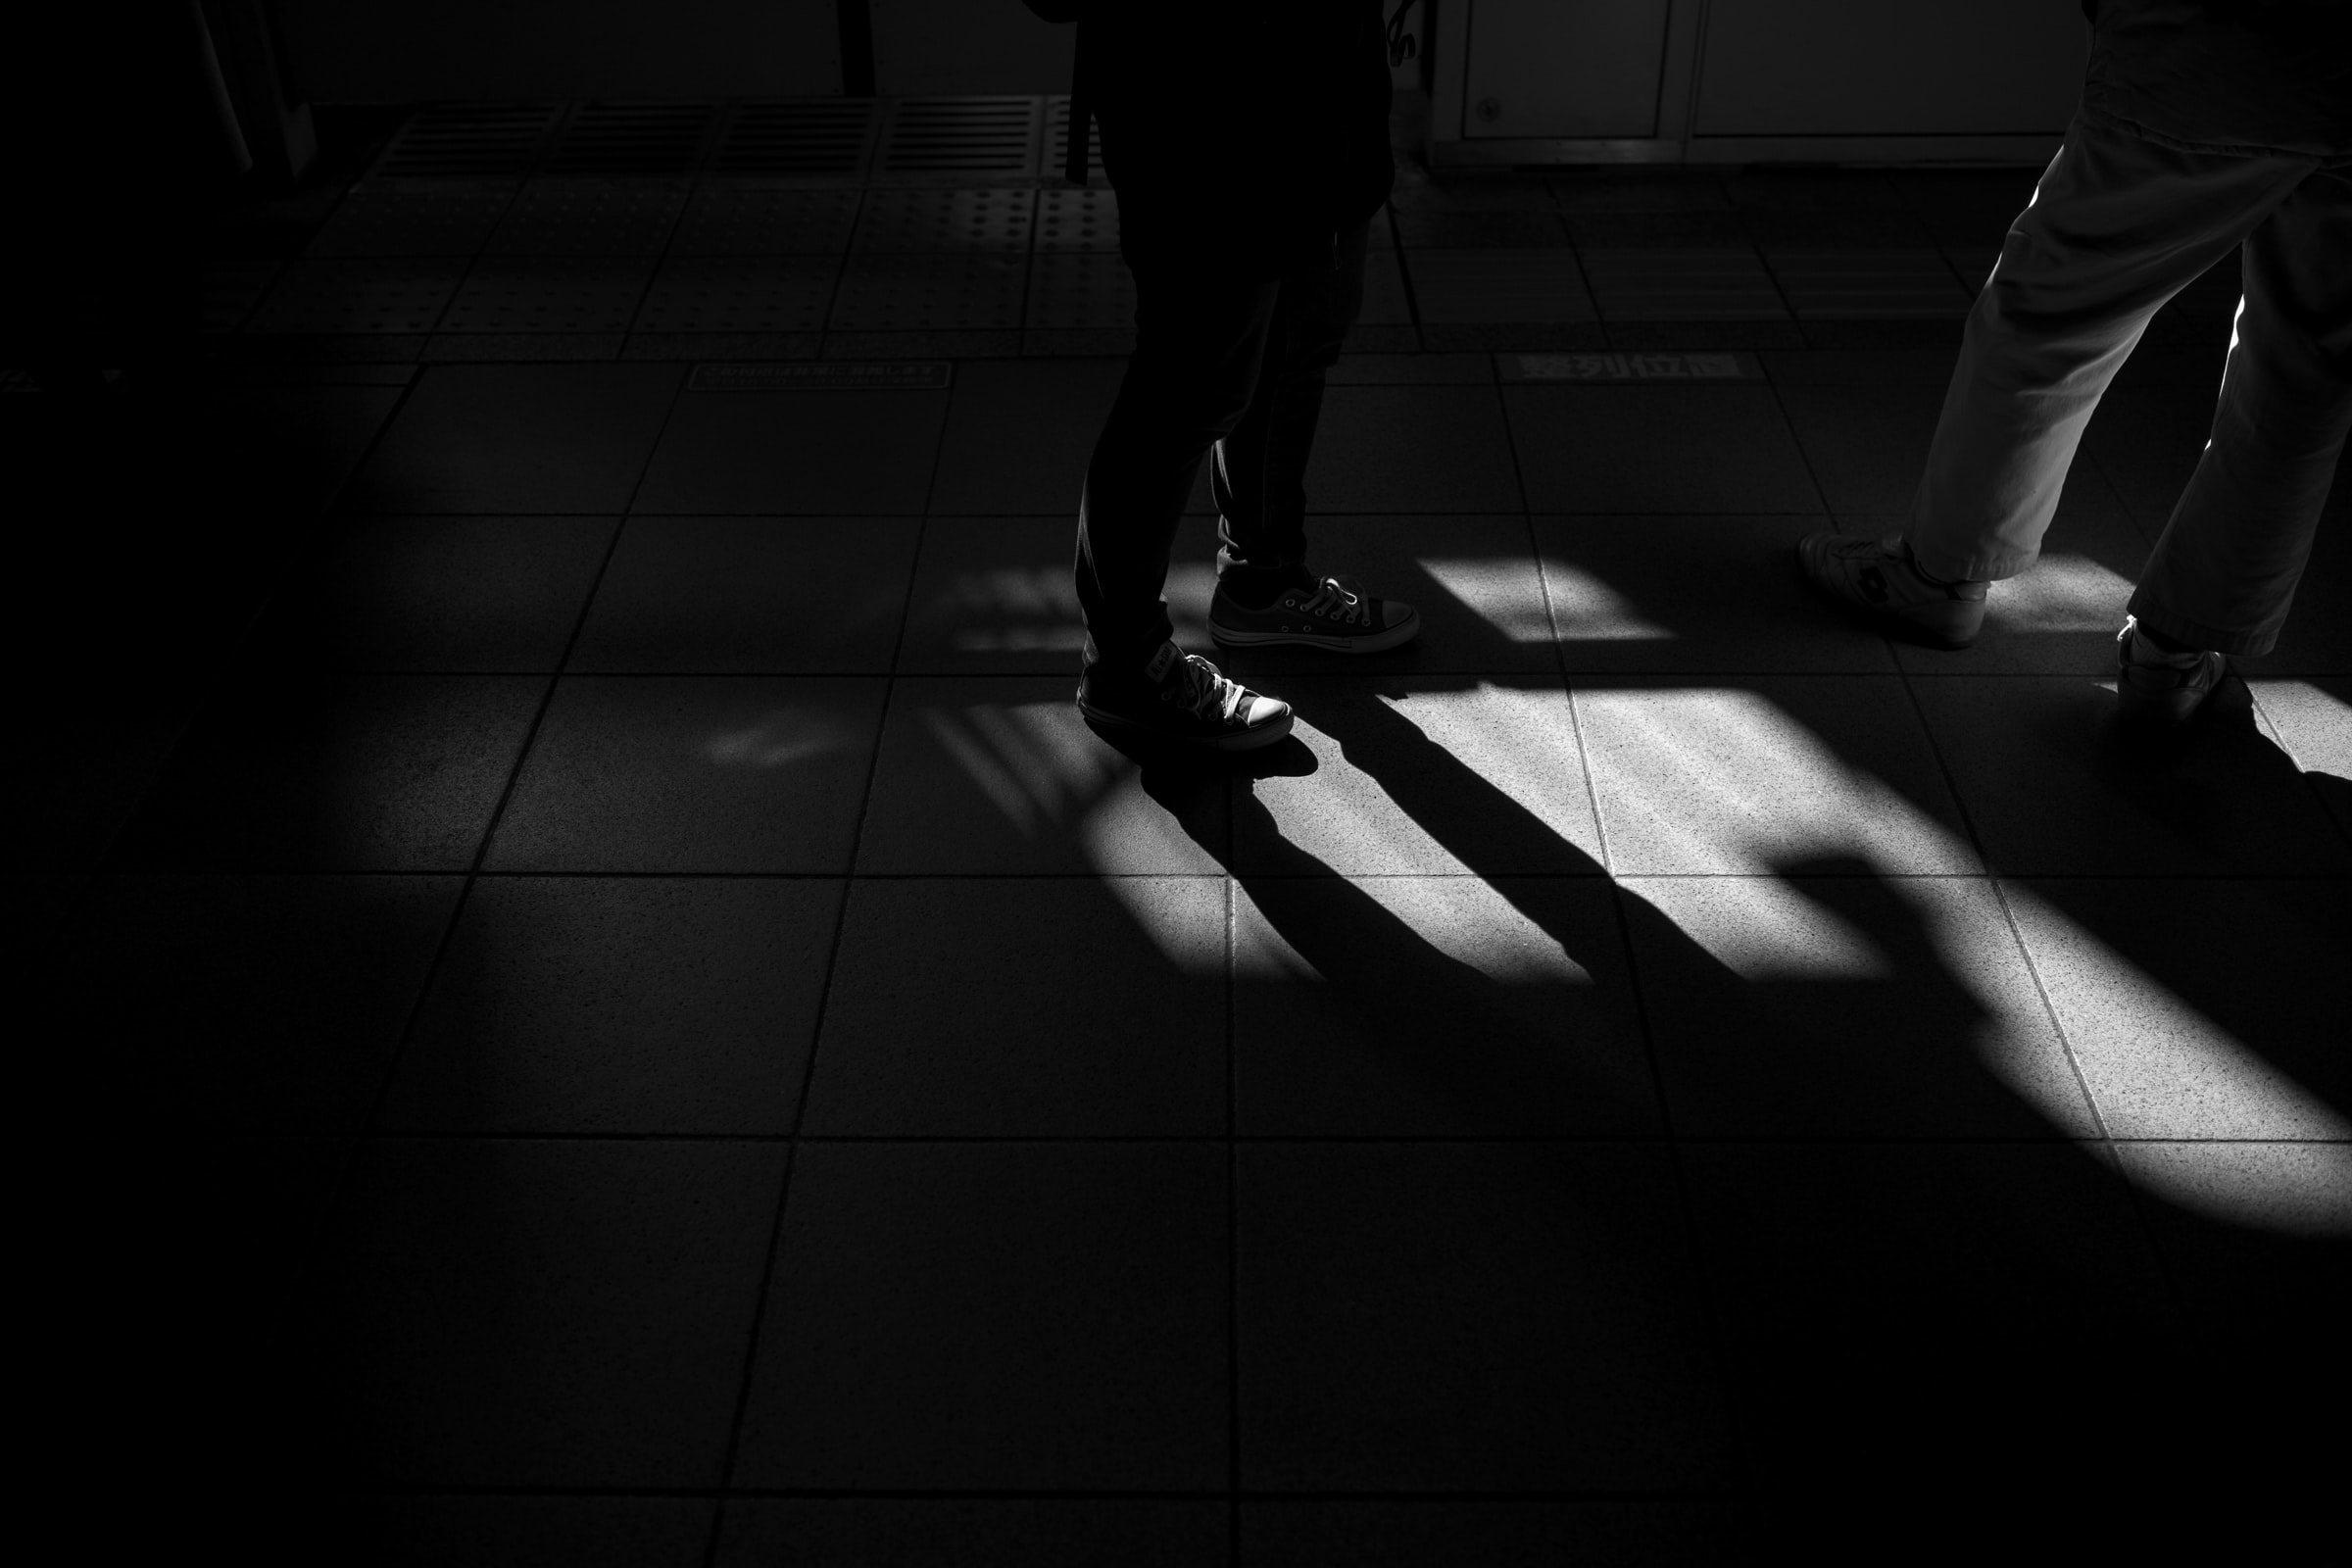 two person standing on white tile